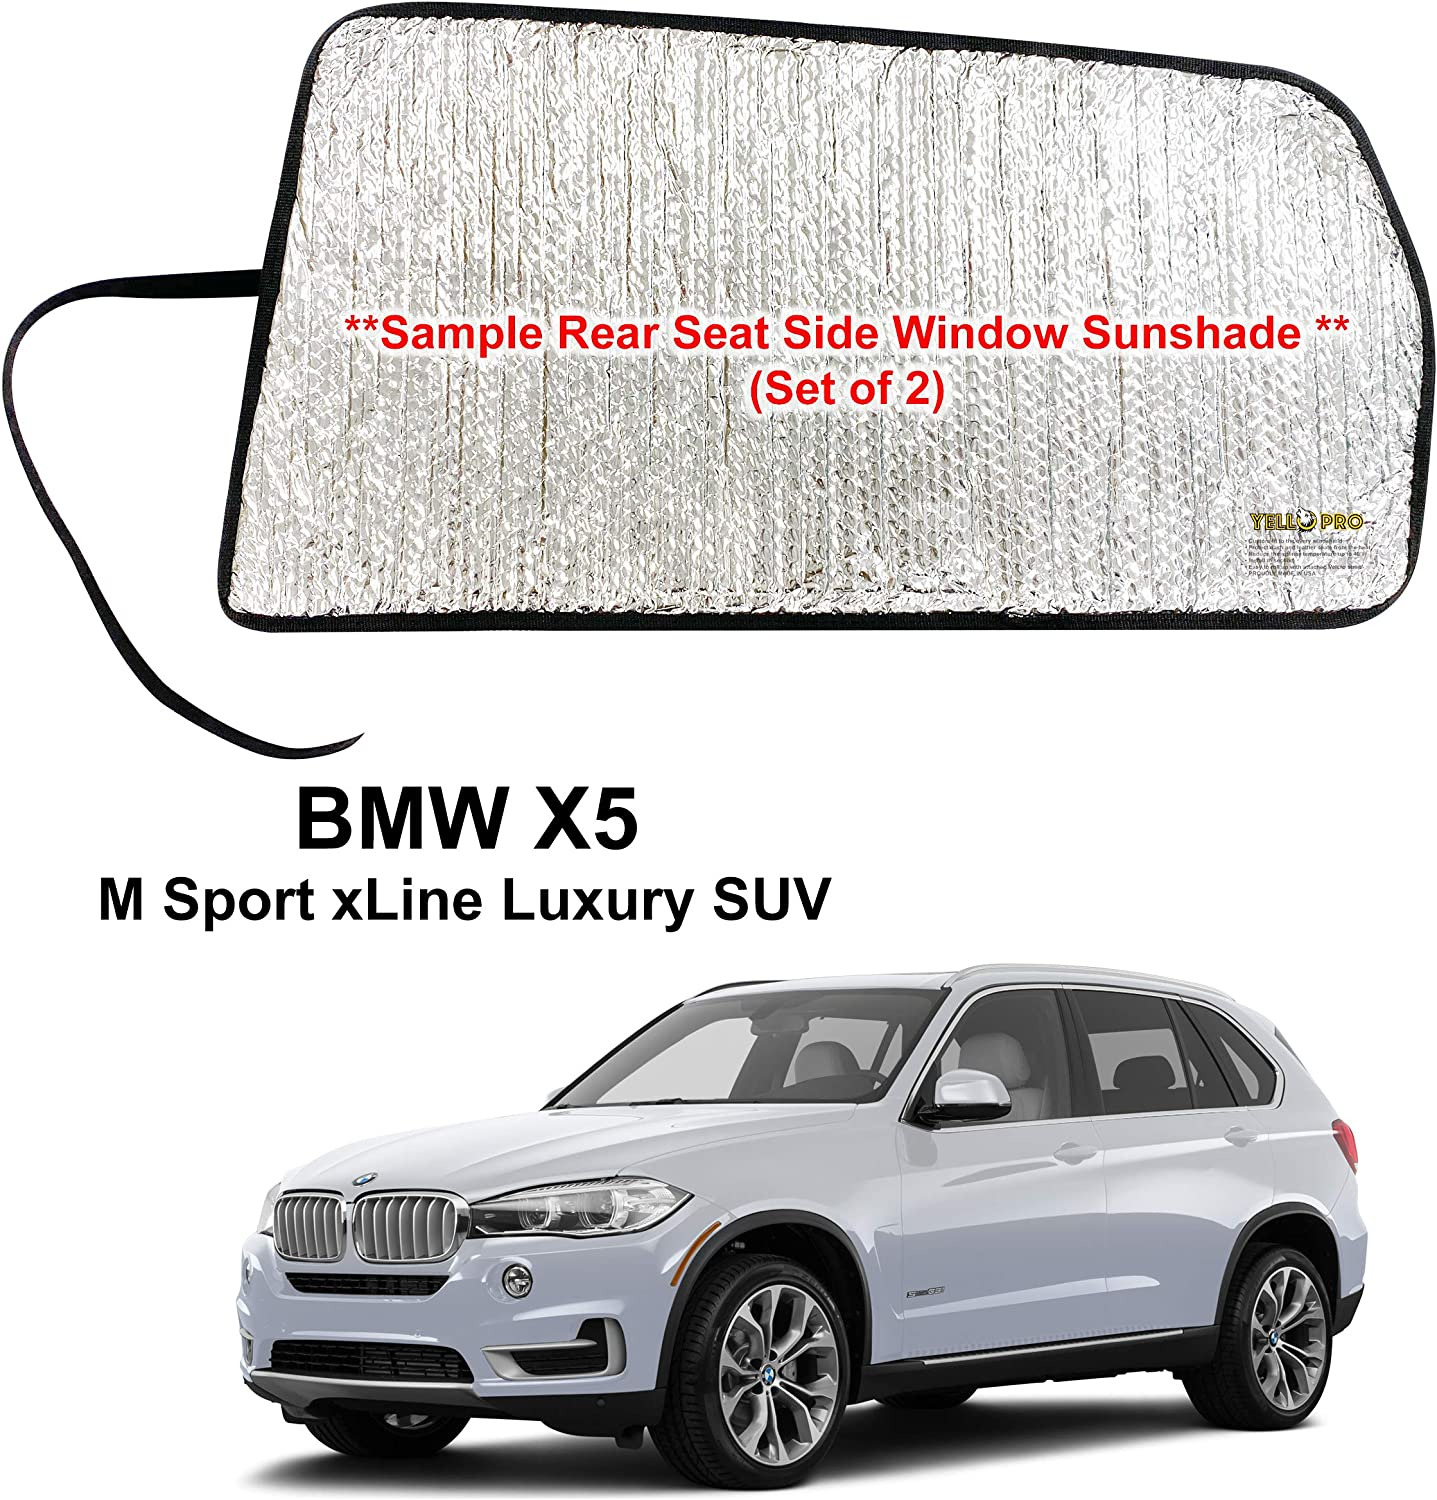 YelloPro Auto Gorgeous Side Window Weekly update Rear Seat for Custom Fit Sunshade 2014